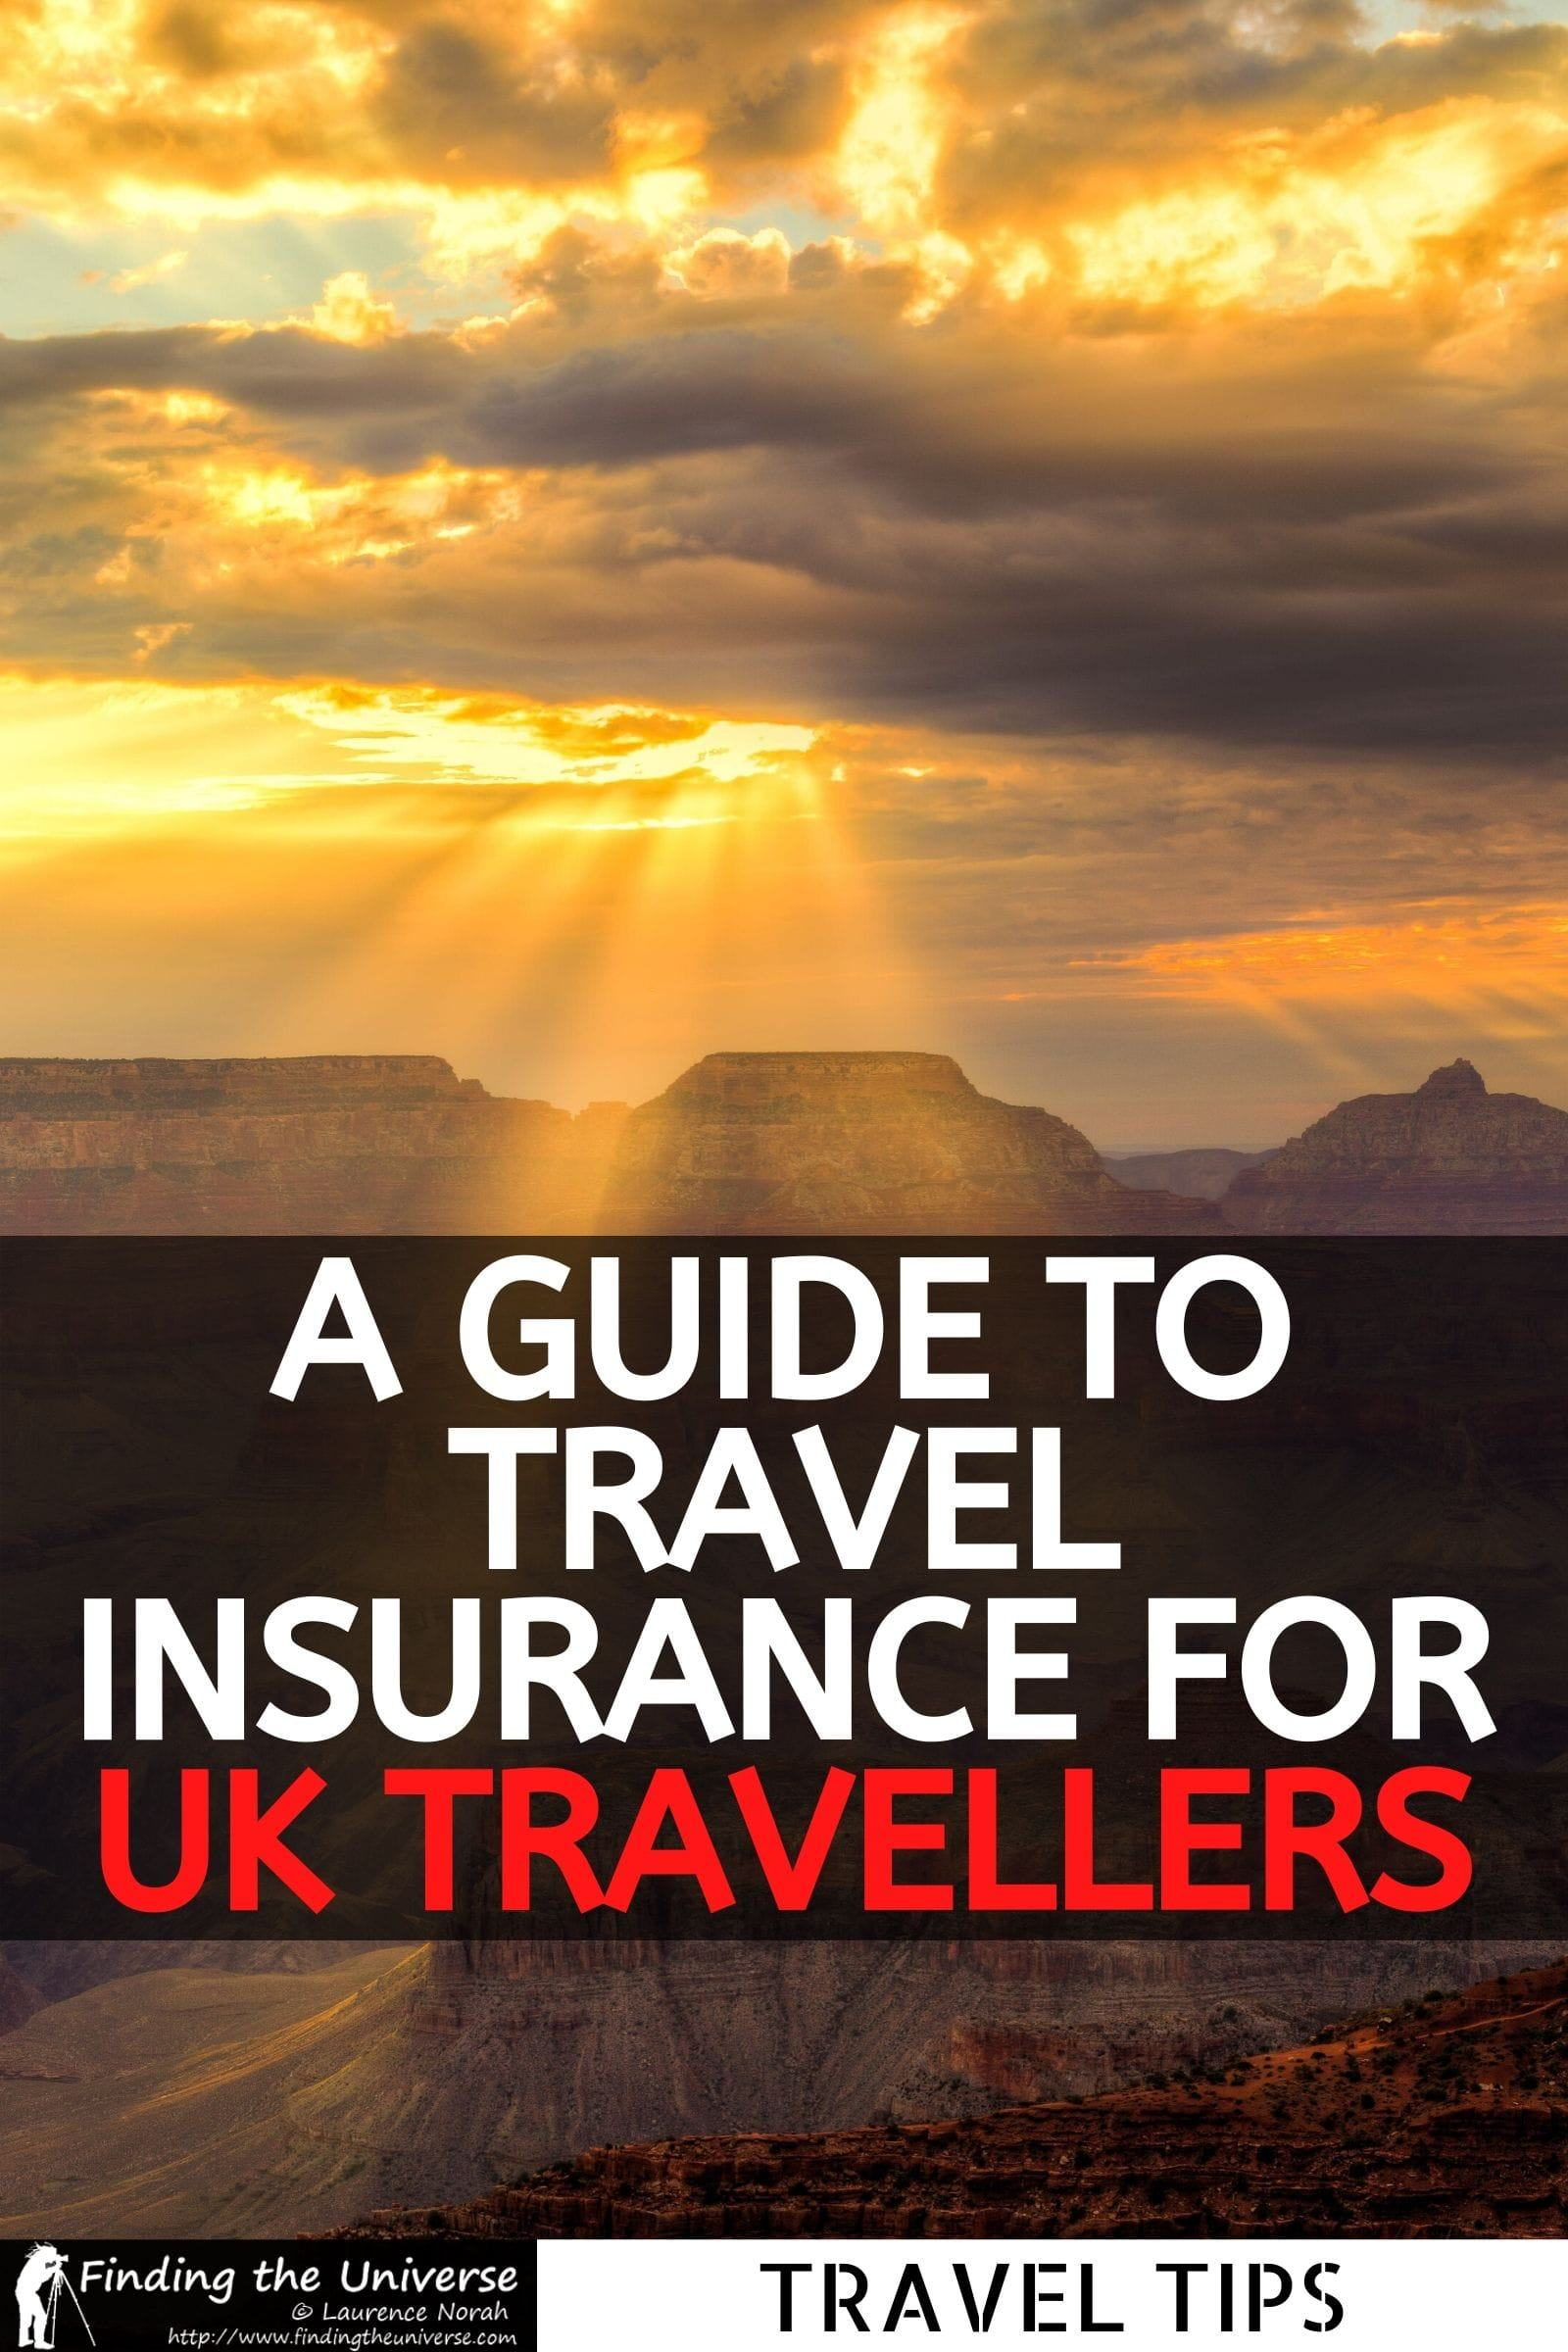 A detailed guide to travel insurance for UK travellers. What to look for in a policy, common inclusions and exclusions, & a round up of the options